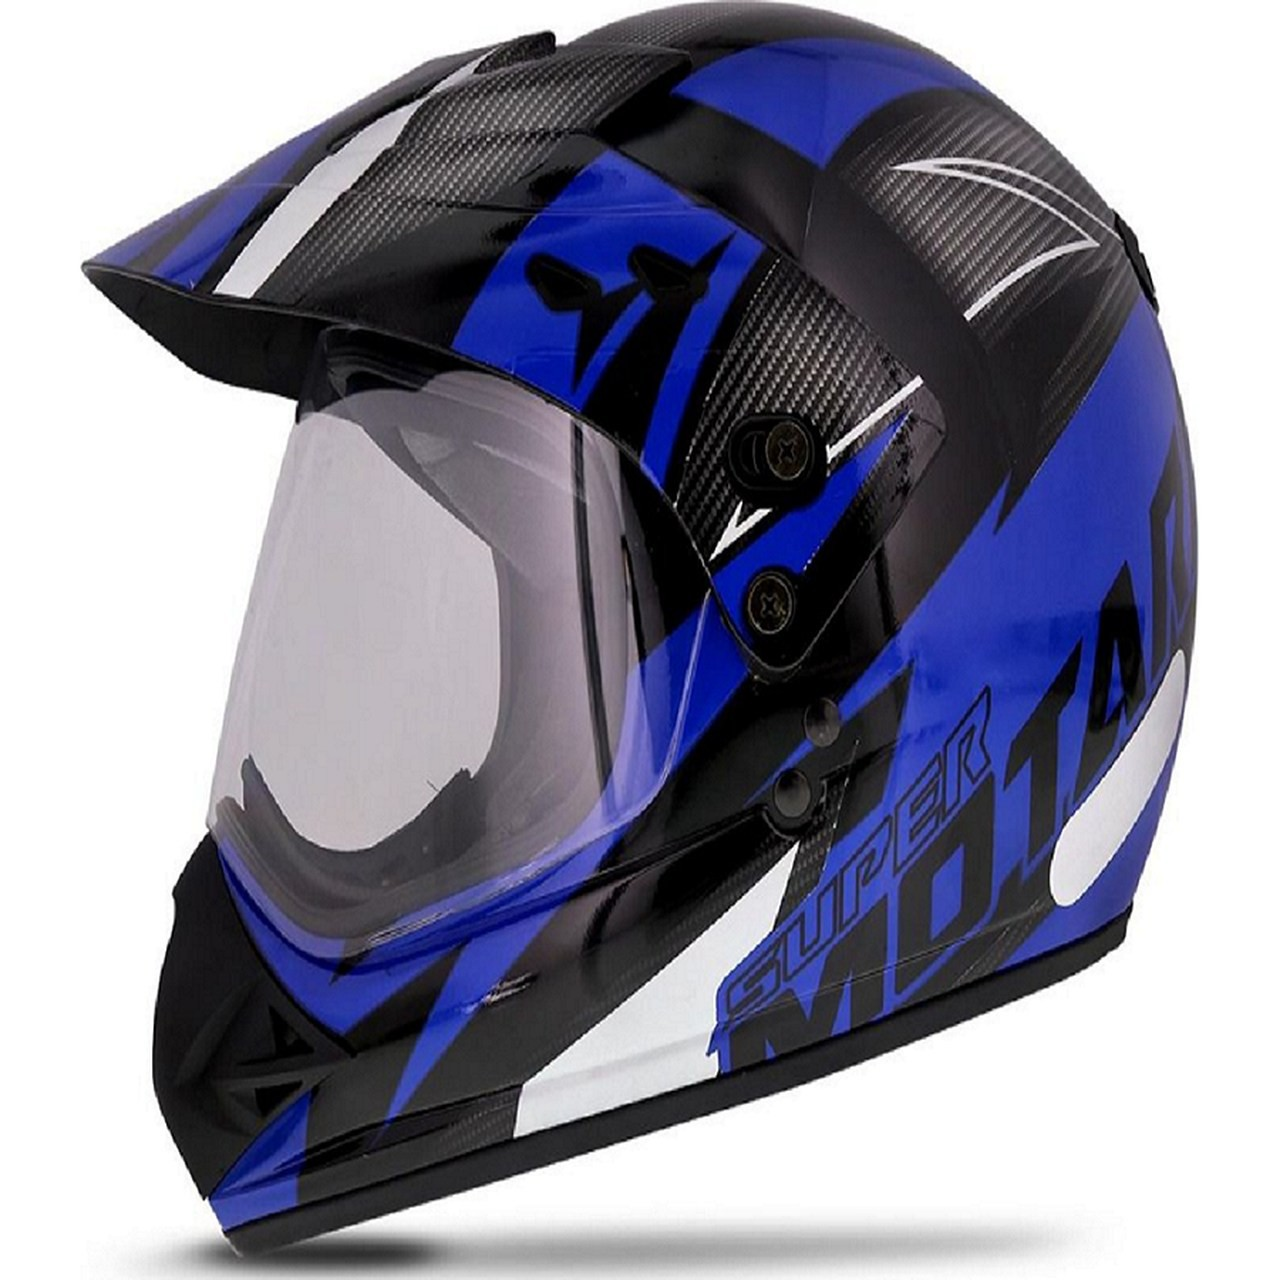 Capacete moto cross Super Motard Iron preto/azul